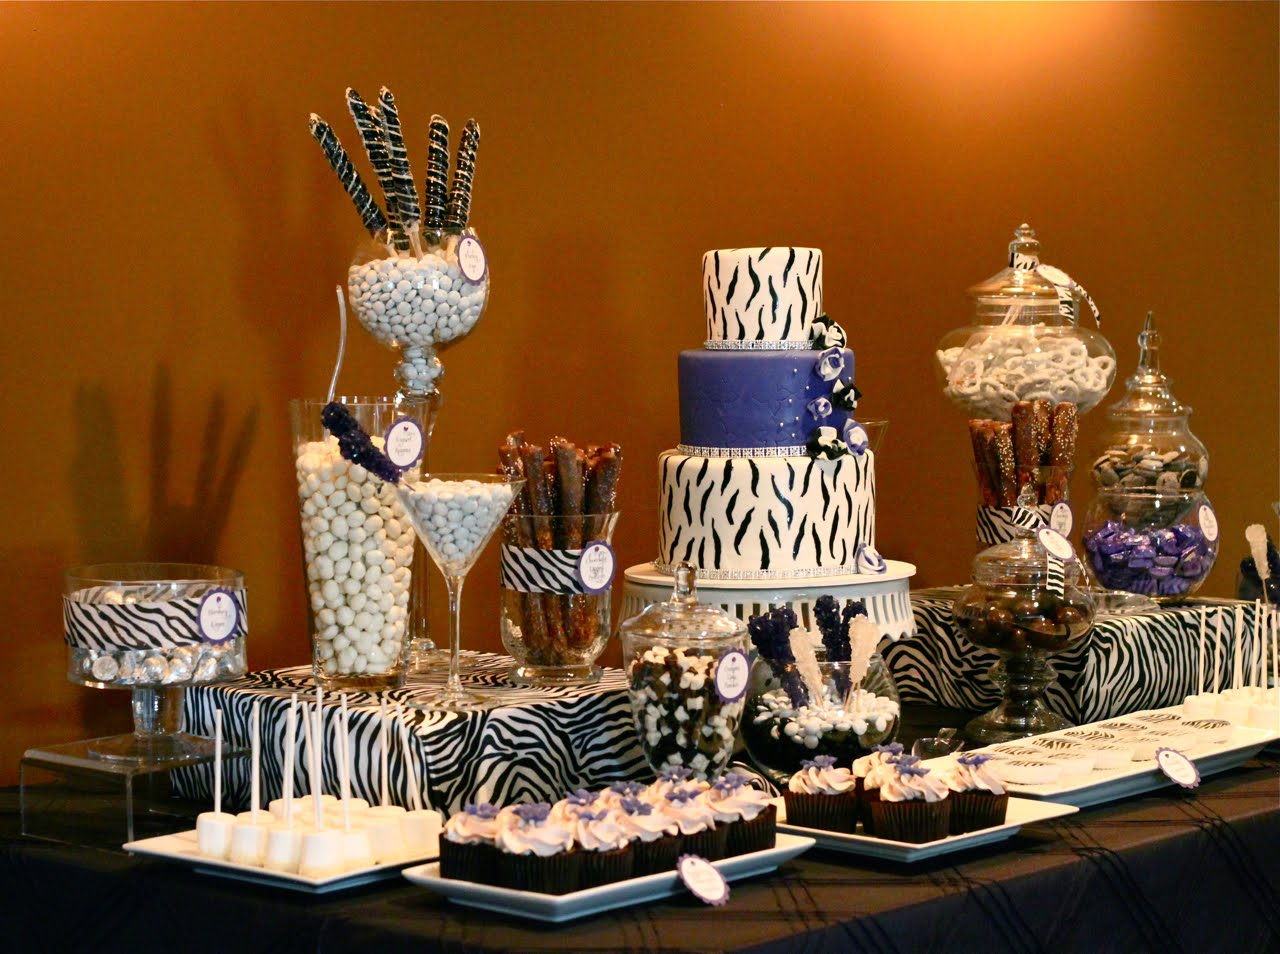 zebra | Search Results | The Couture Cakery